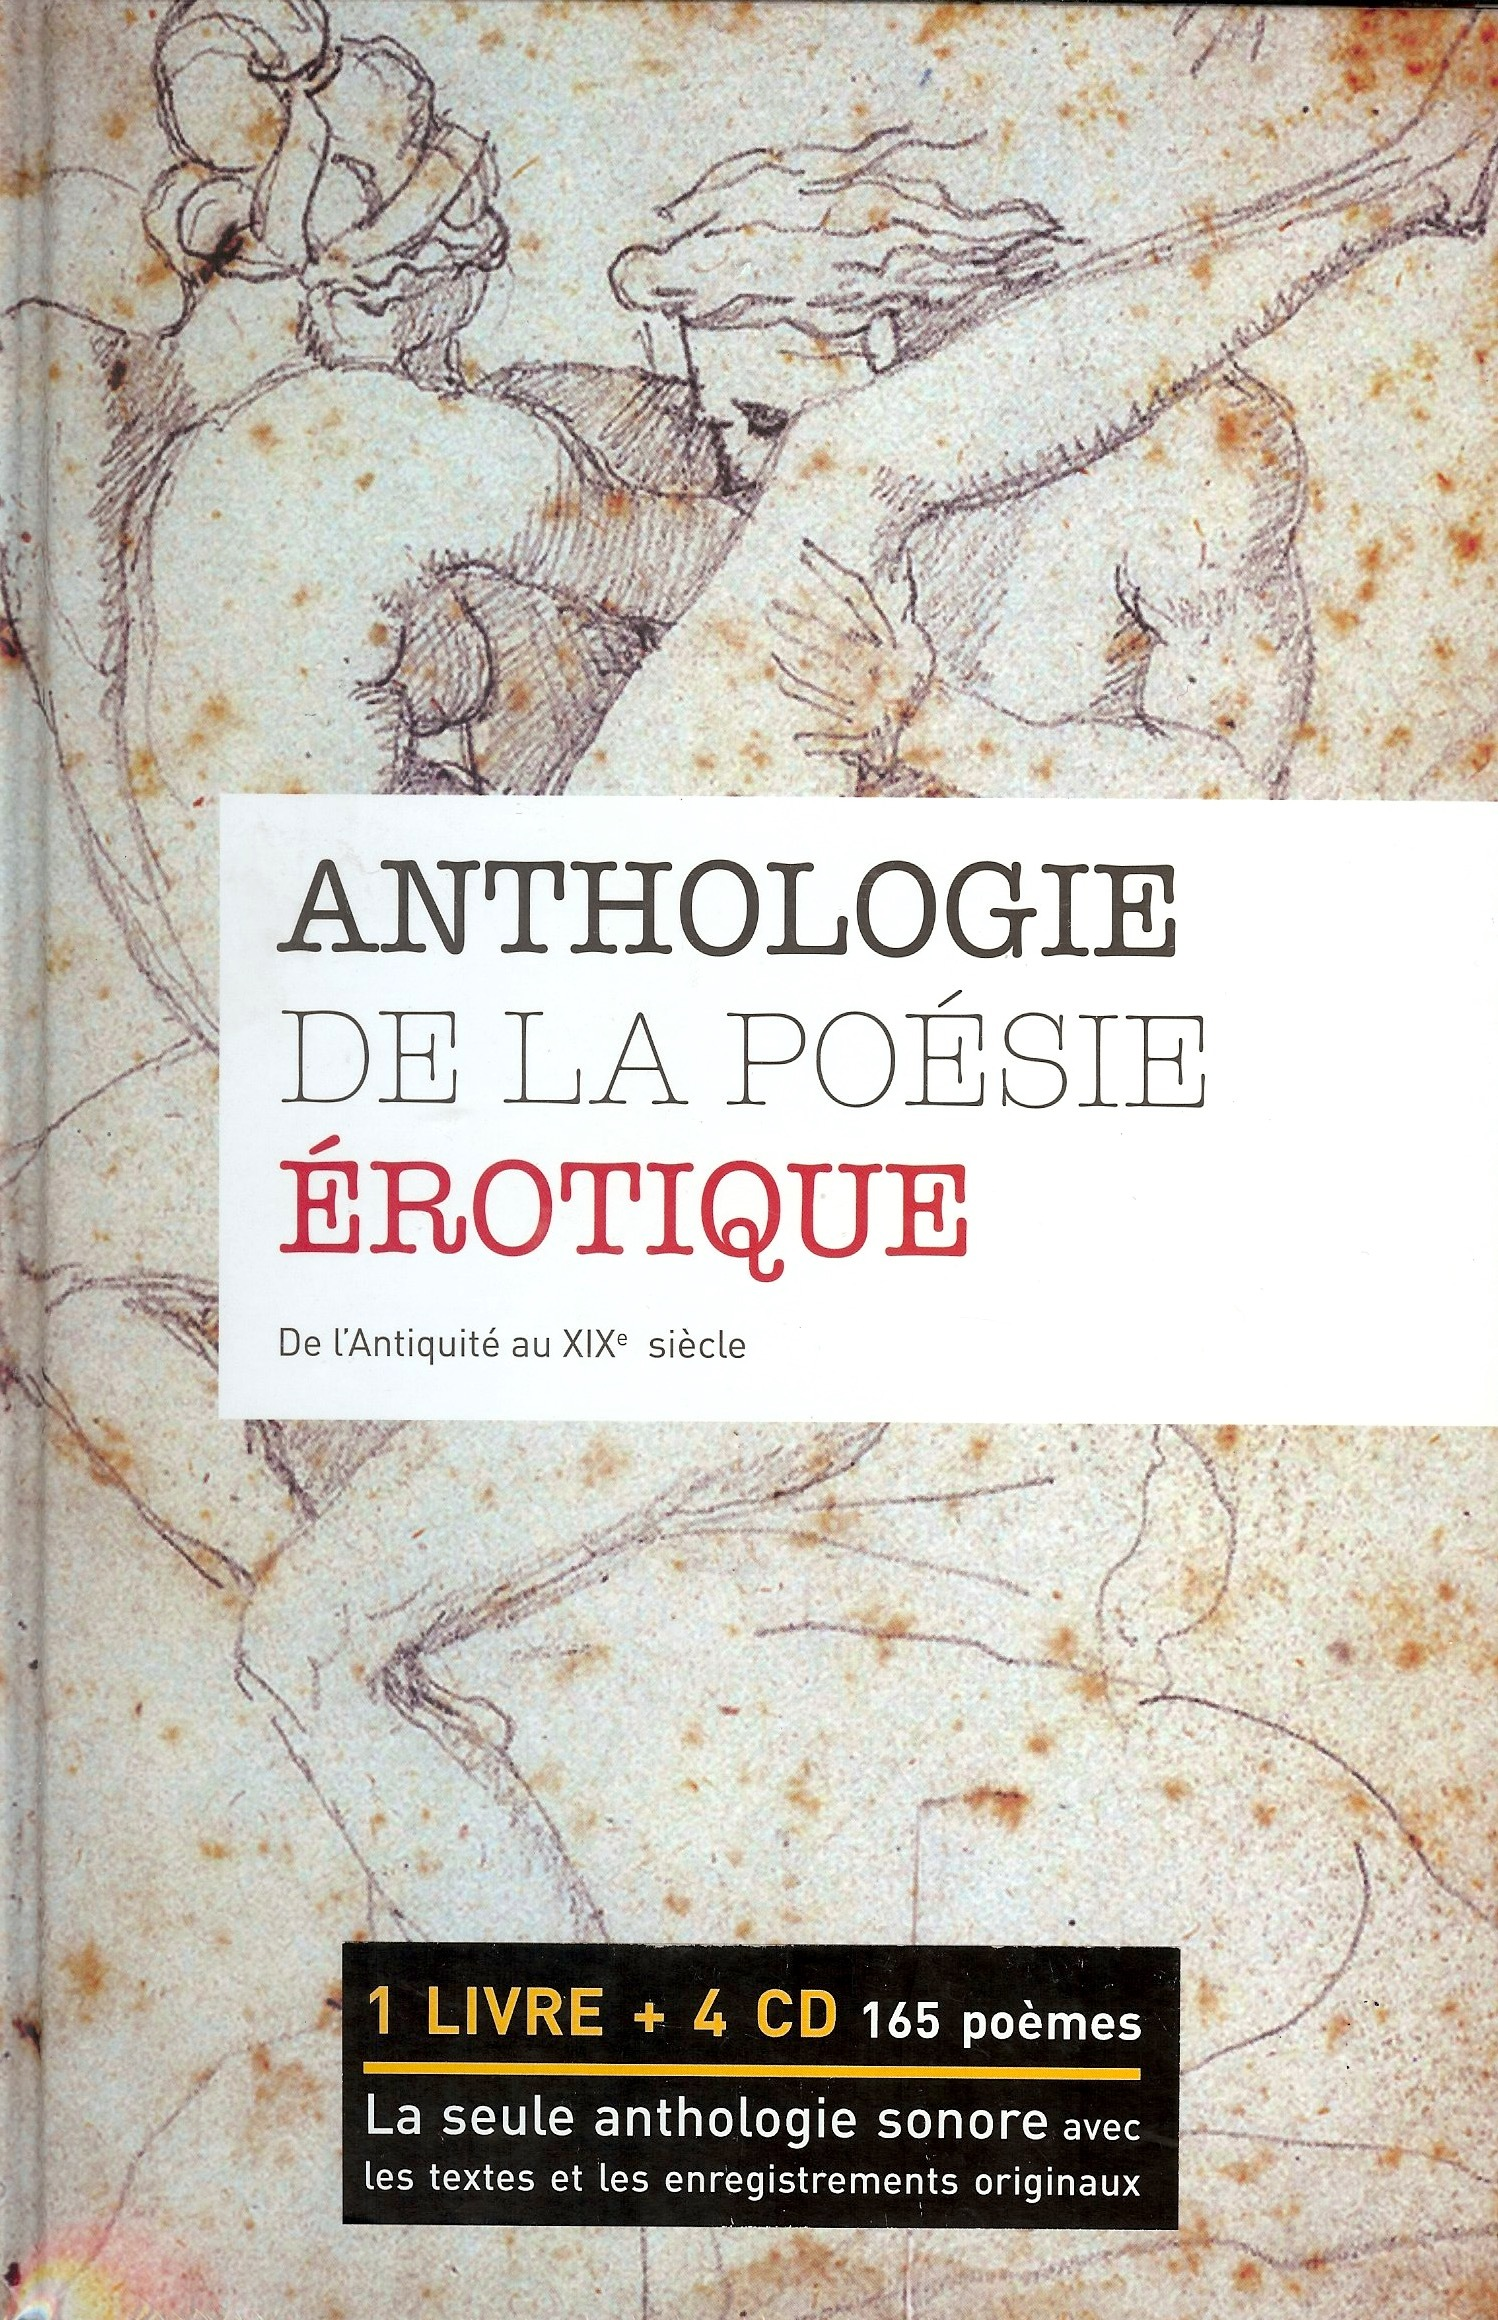 ANTHOLOGIE DE LA POESIE EROTIQUE